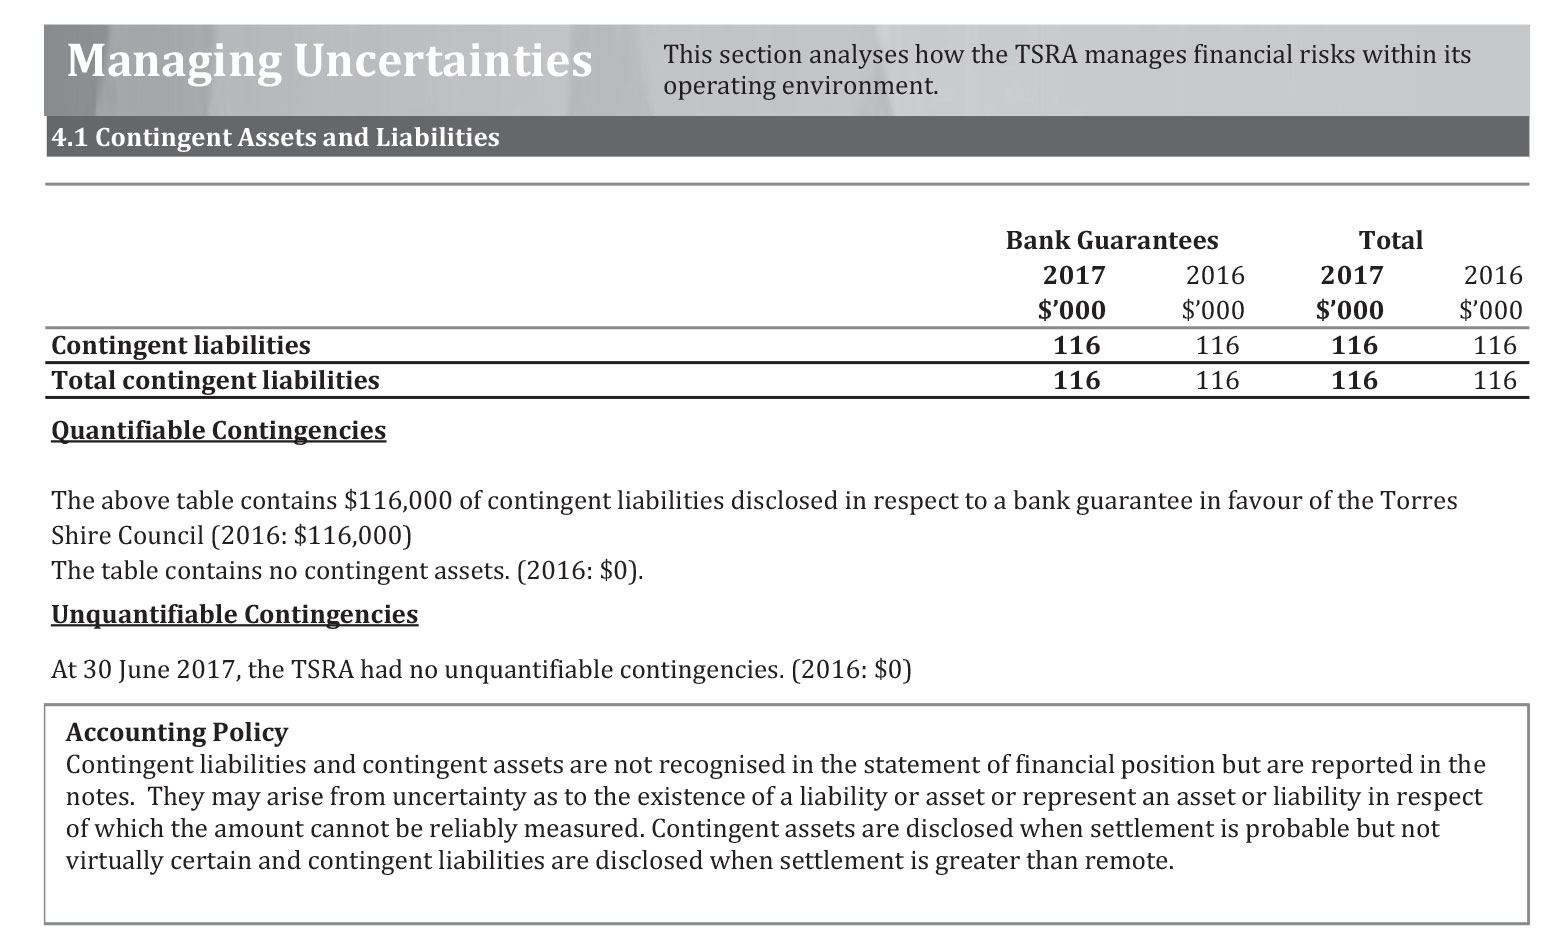 a photograph of Managing Uncertainties document (page 1)